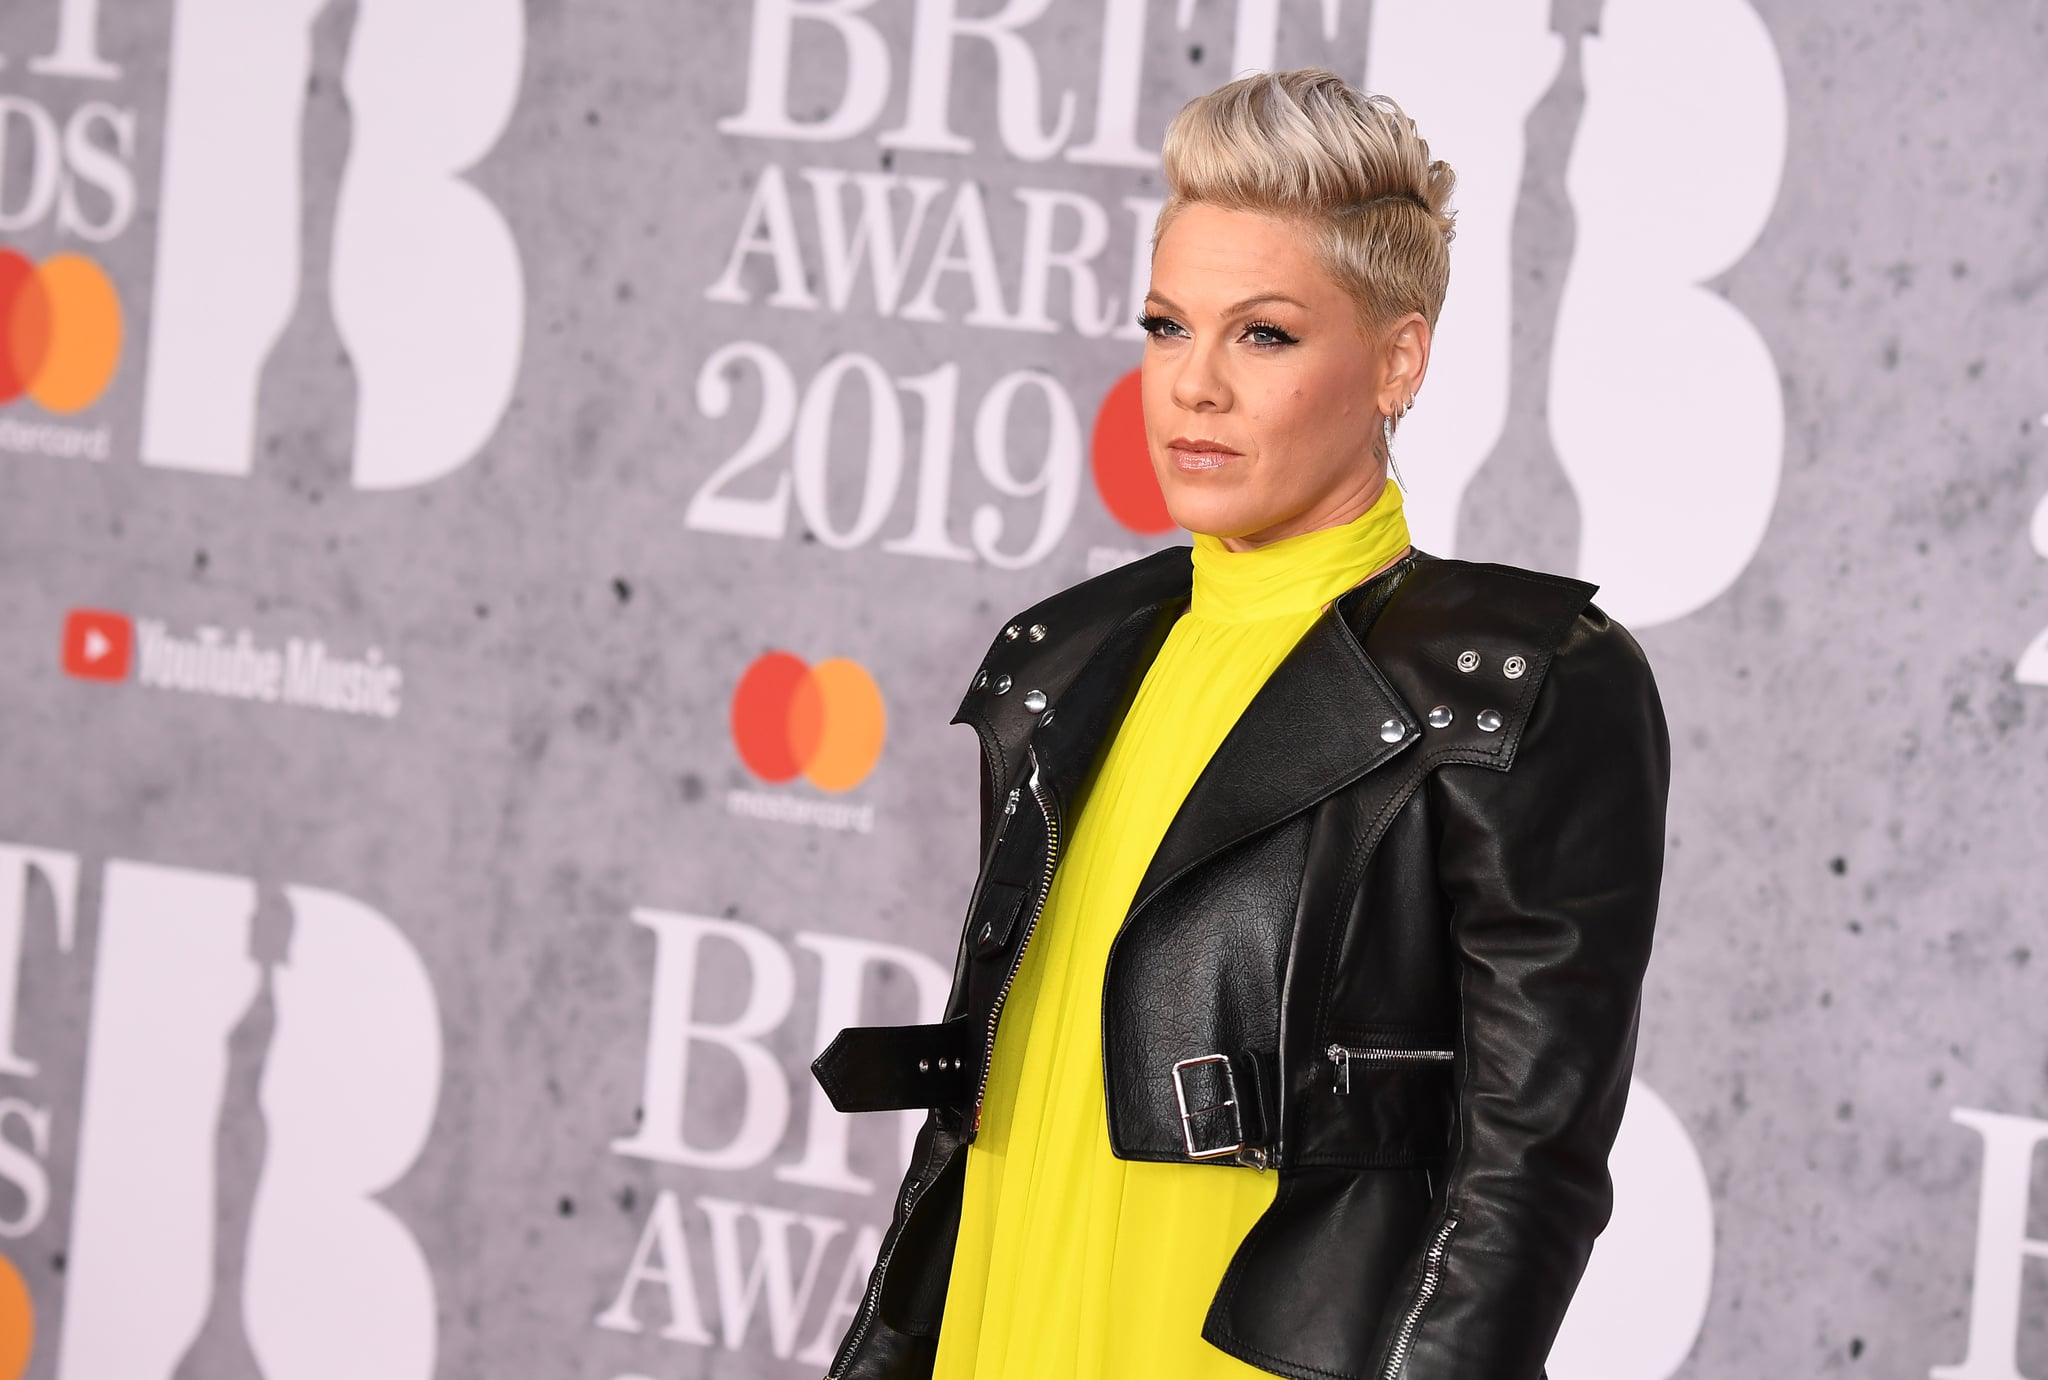 LONDON, ENGLAND - FEBRUARY 20: (EDITORIAL USE ONLY) Pink, winner of the Outstanding Contribution to Music Award, attends The BRIT Awards 2019 held at The O2 Arena on February 20, 2019 in London, England. (Photo by Jeff Spicer/Getty Images)